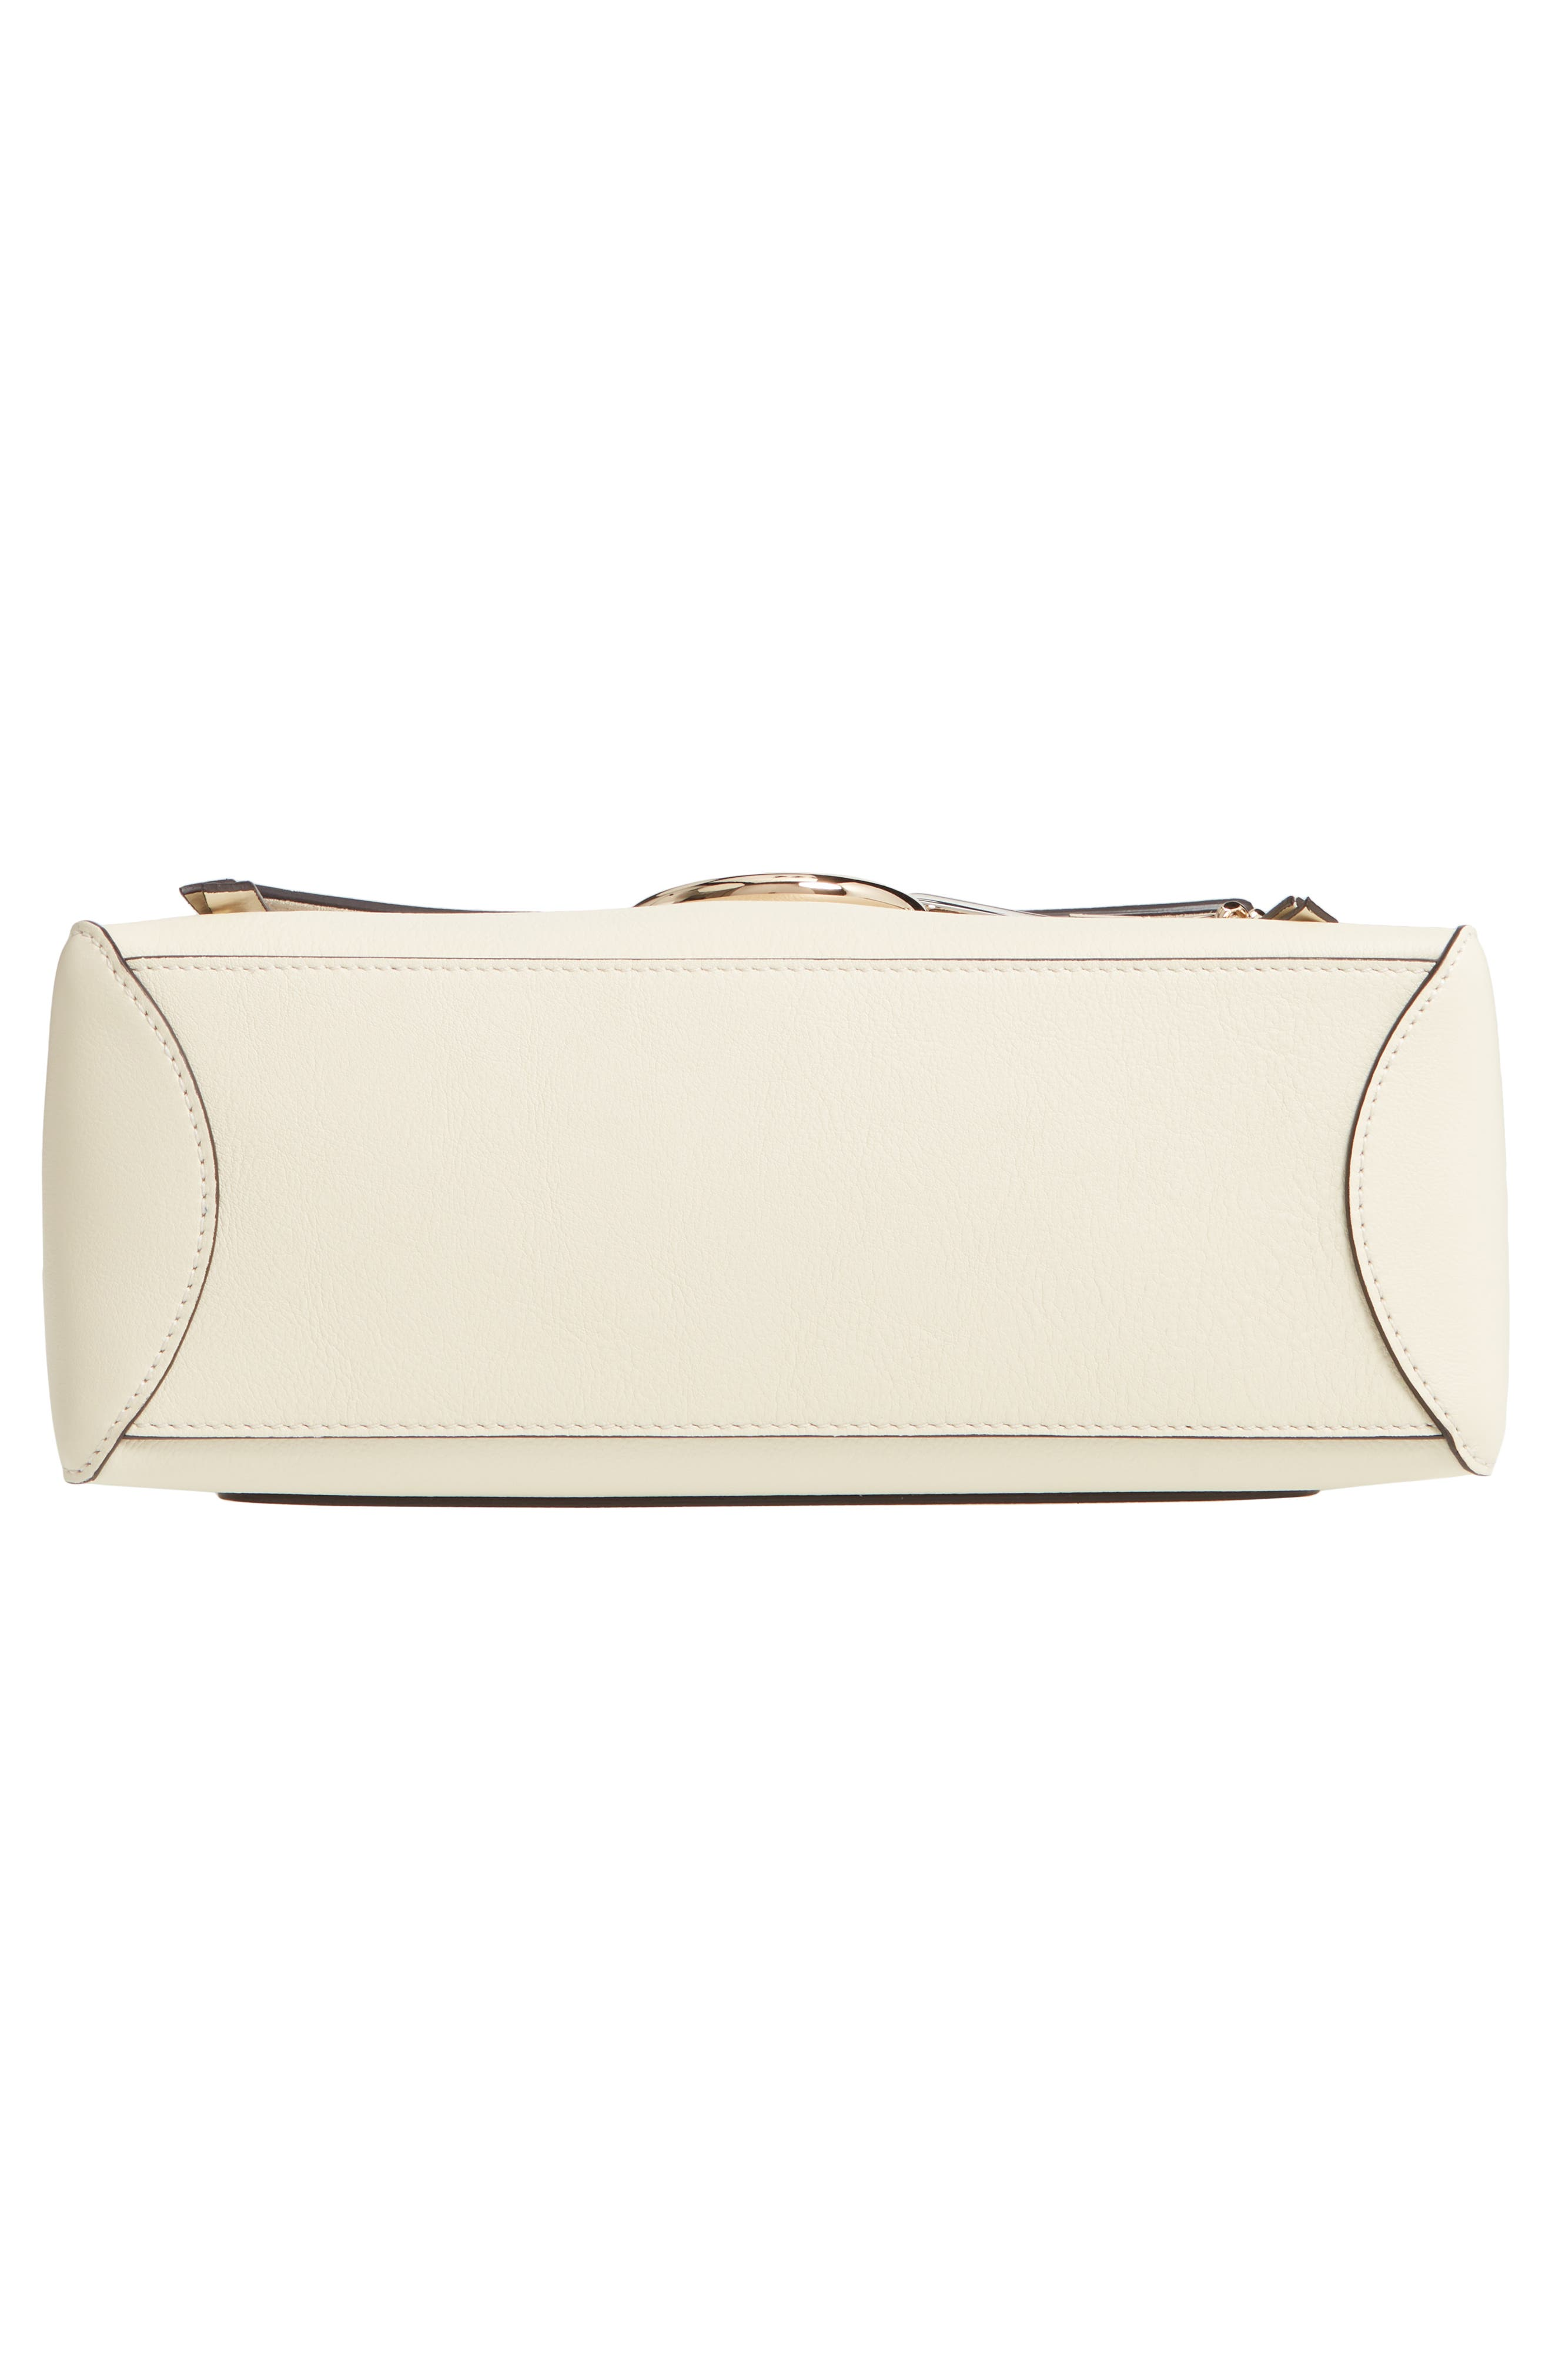 CHLOÉ,                             Small Faye Day Leather Shoulder Bag,                             Alternate thumbnail 6, color,                             905